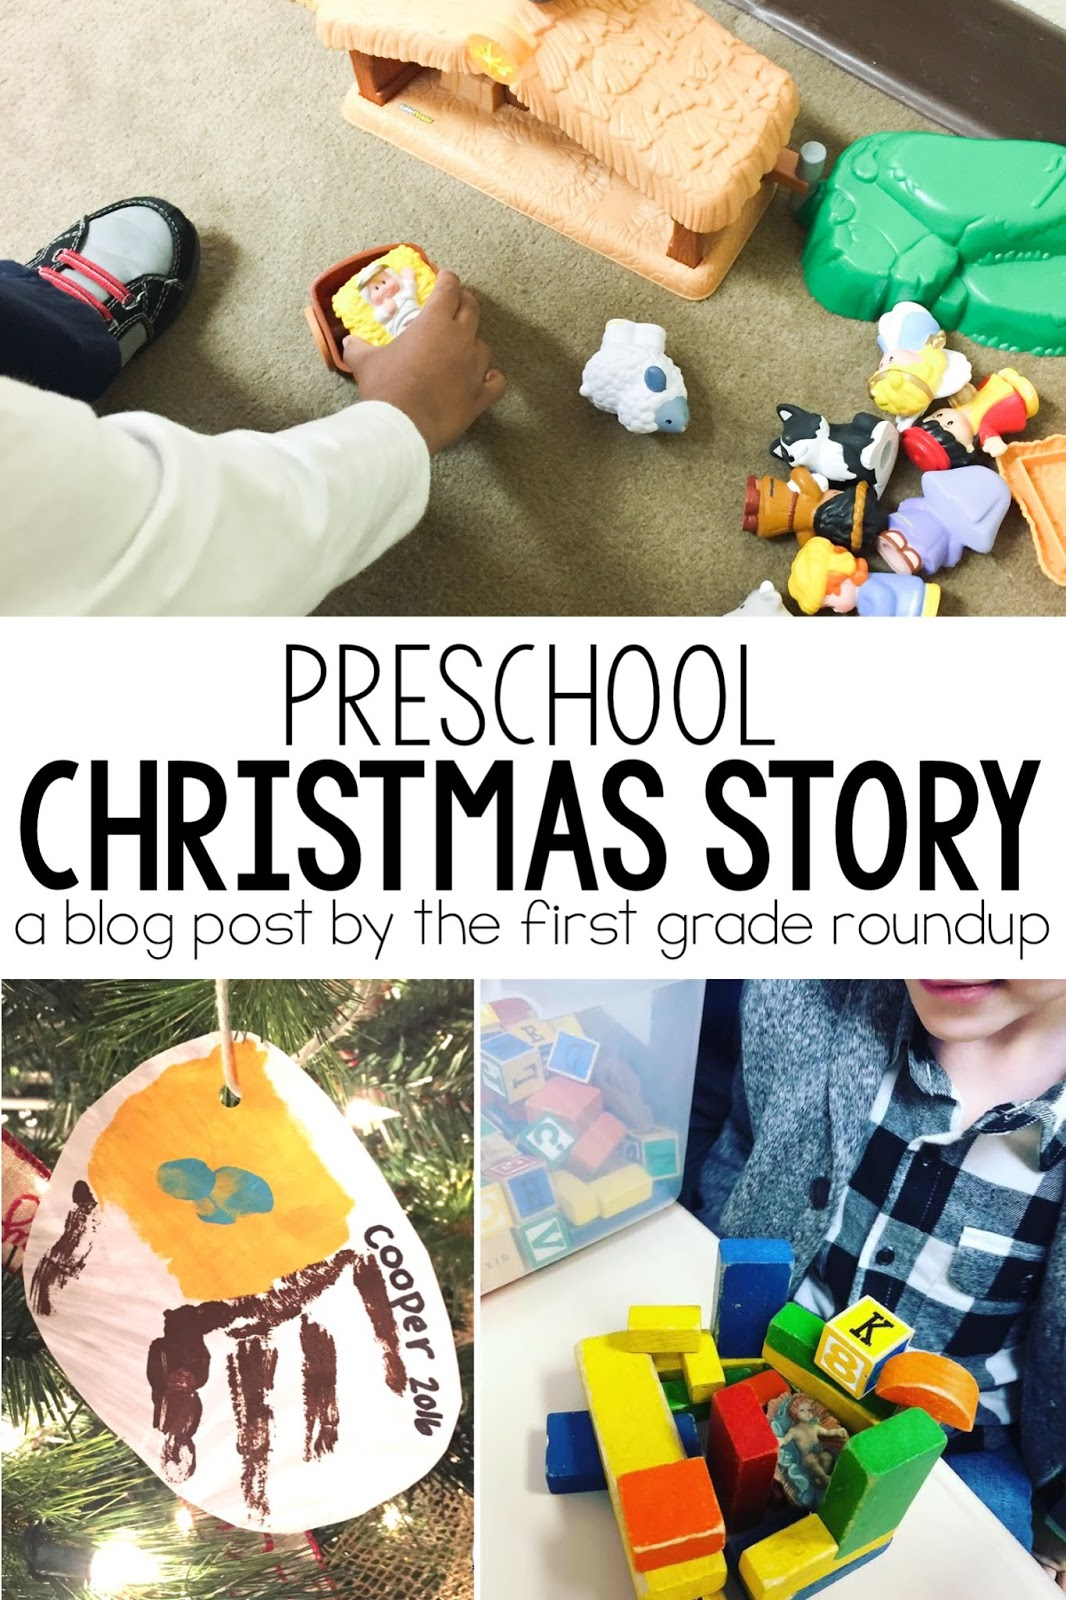 Christmas Story For Preschoolers.The Christmas Story With Preschoolers Firstgraderoundup